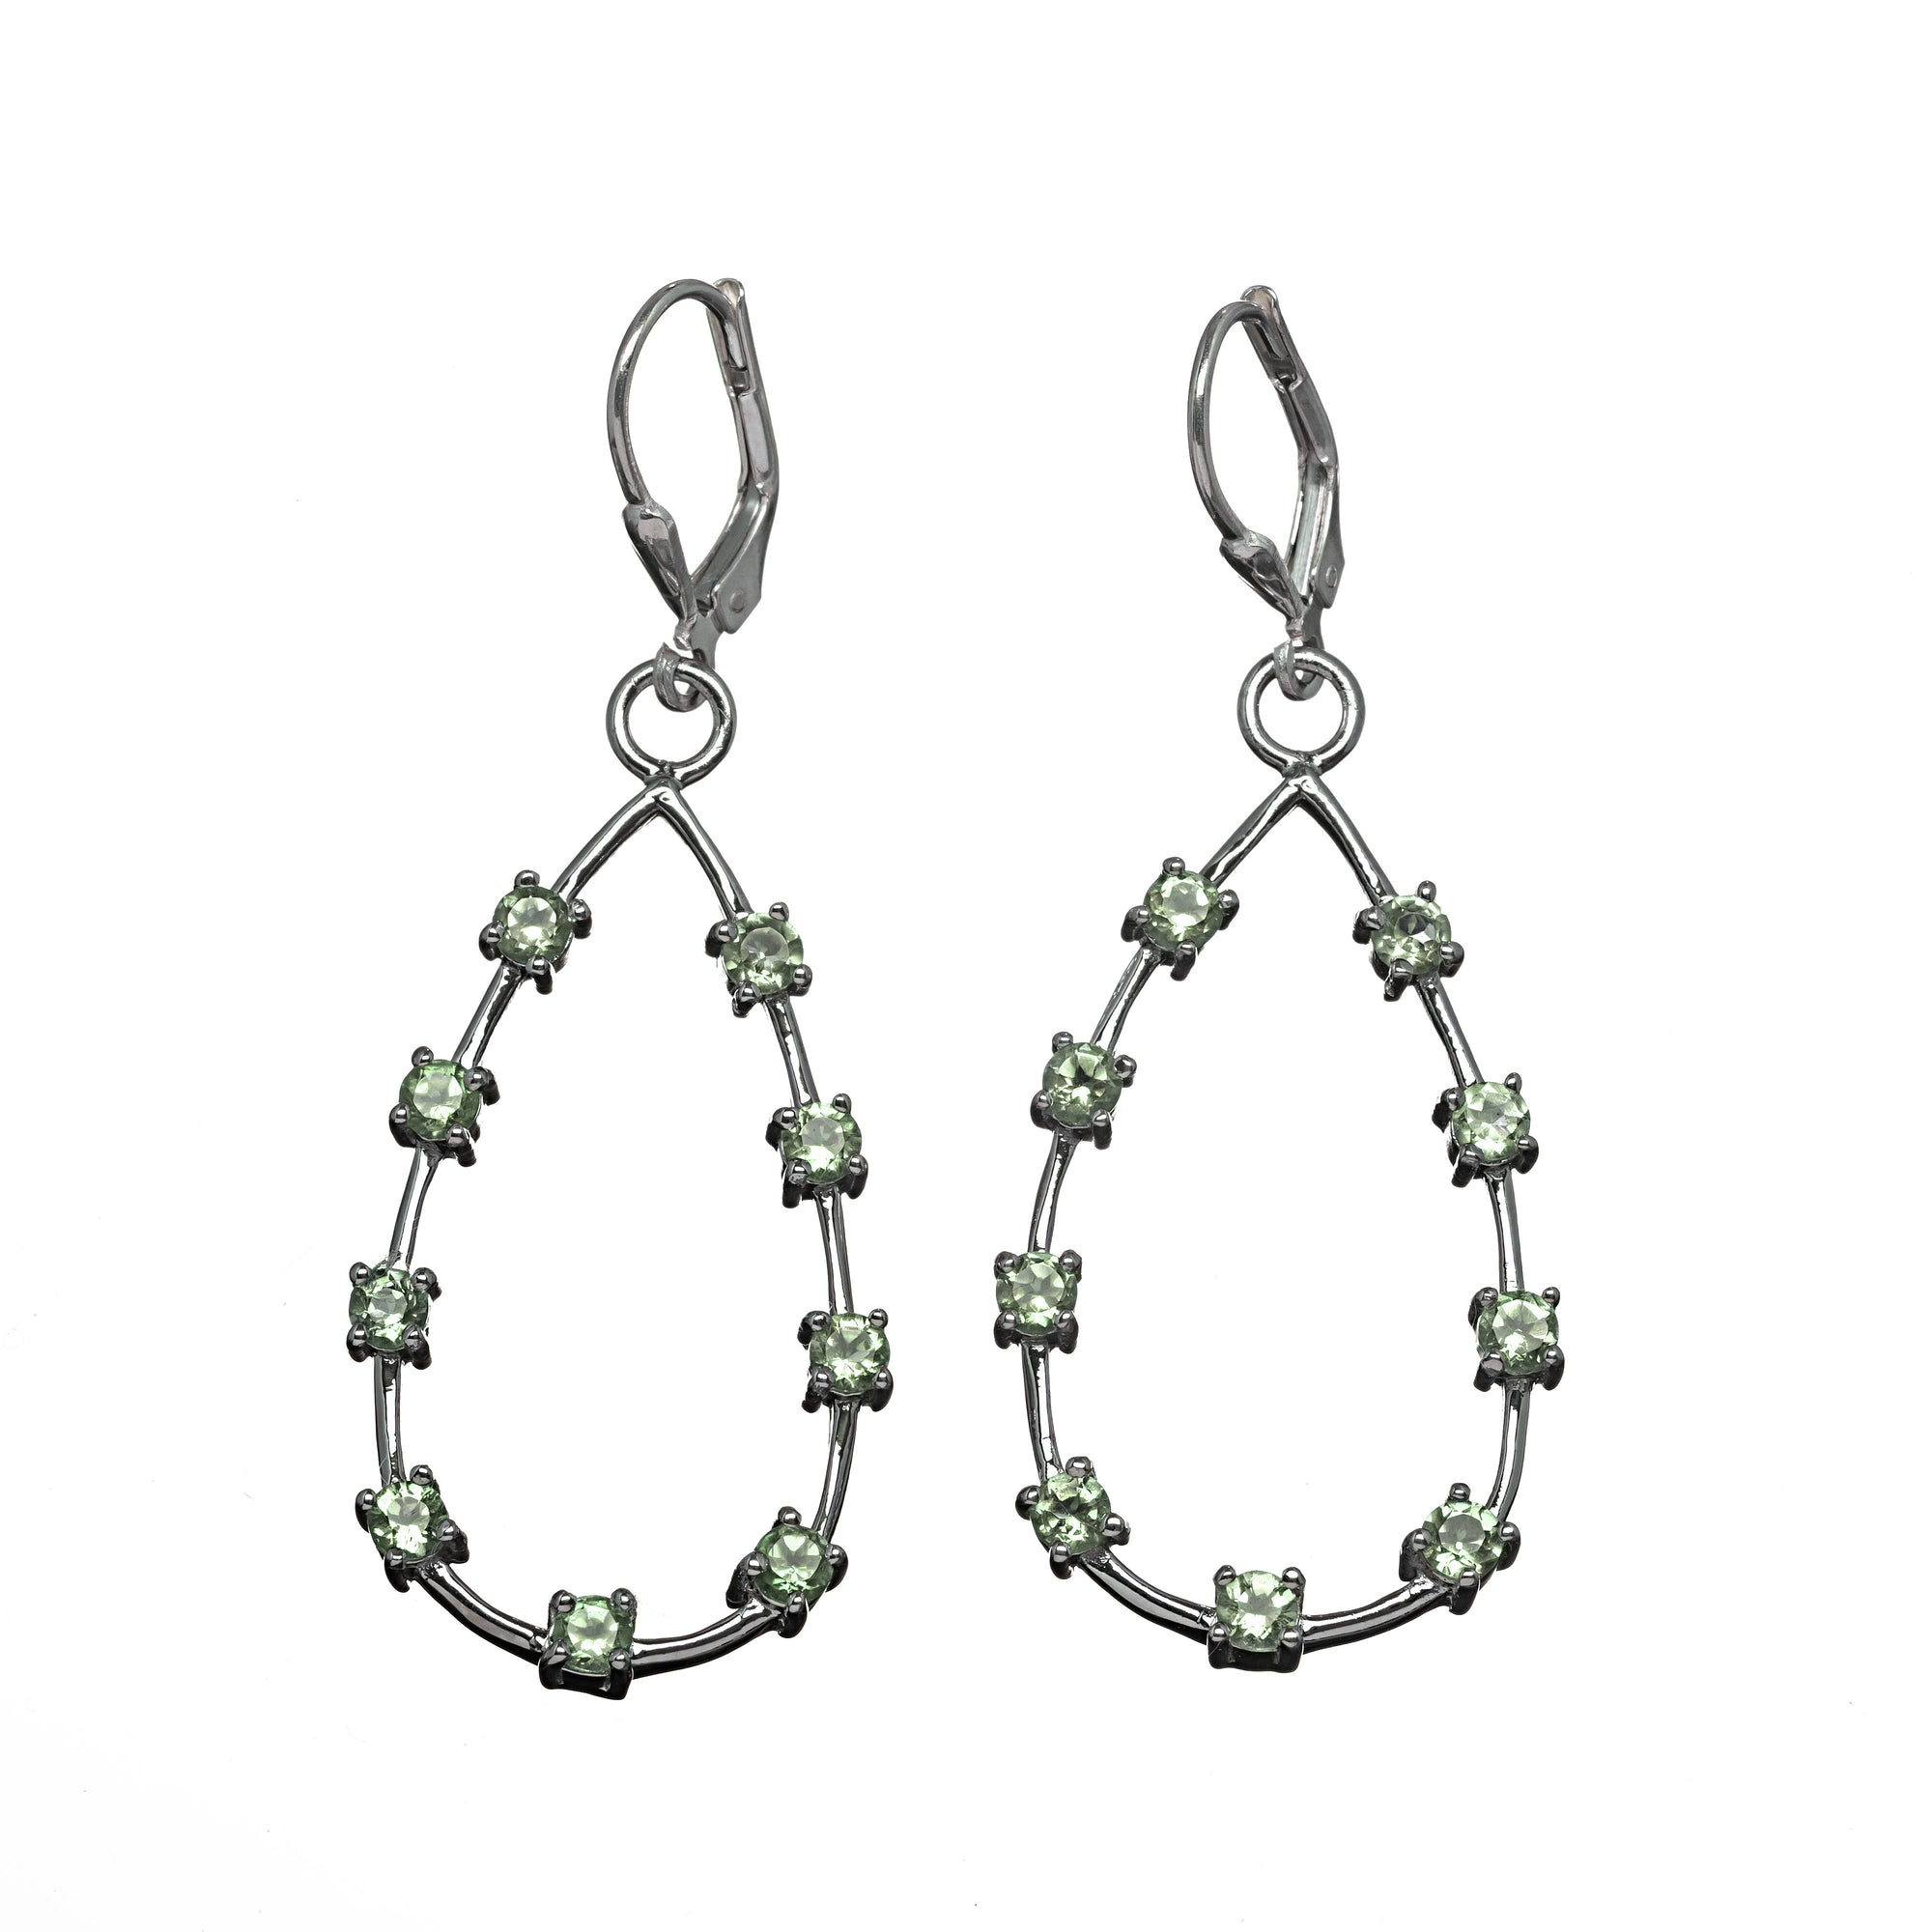 Teardrop Stone Hoop Earrings